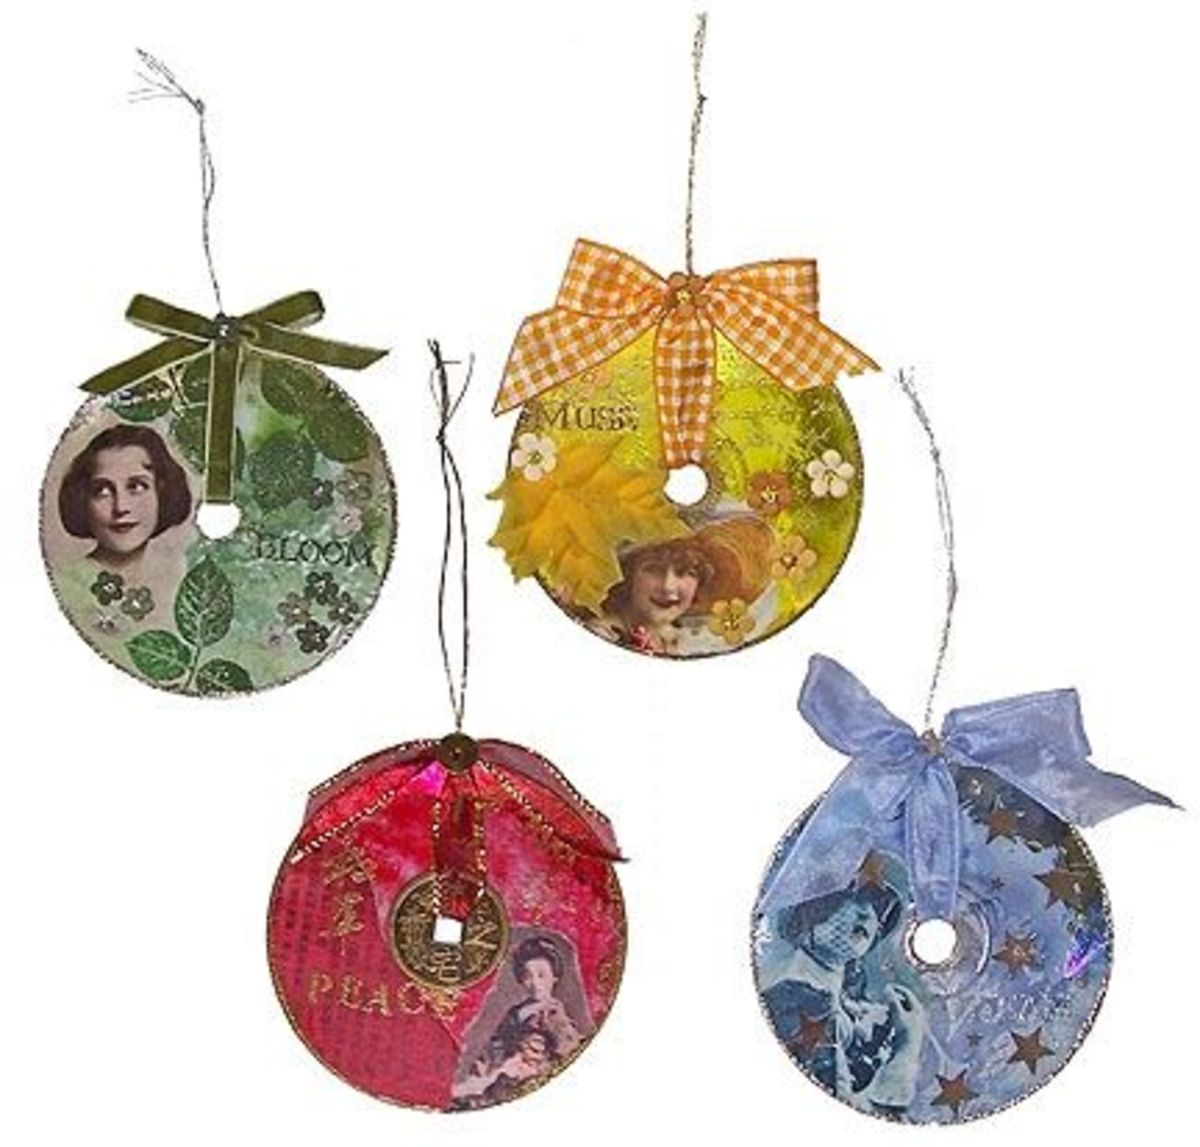 Recycled Christmas Crafts ~ 142106_Recycled Christmas Decorations Ideas For Office